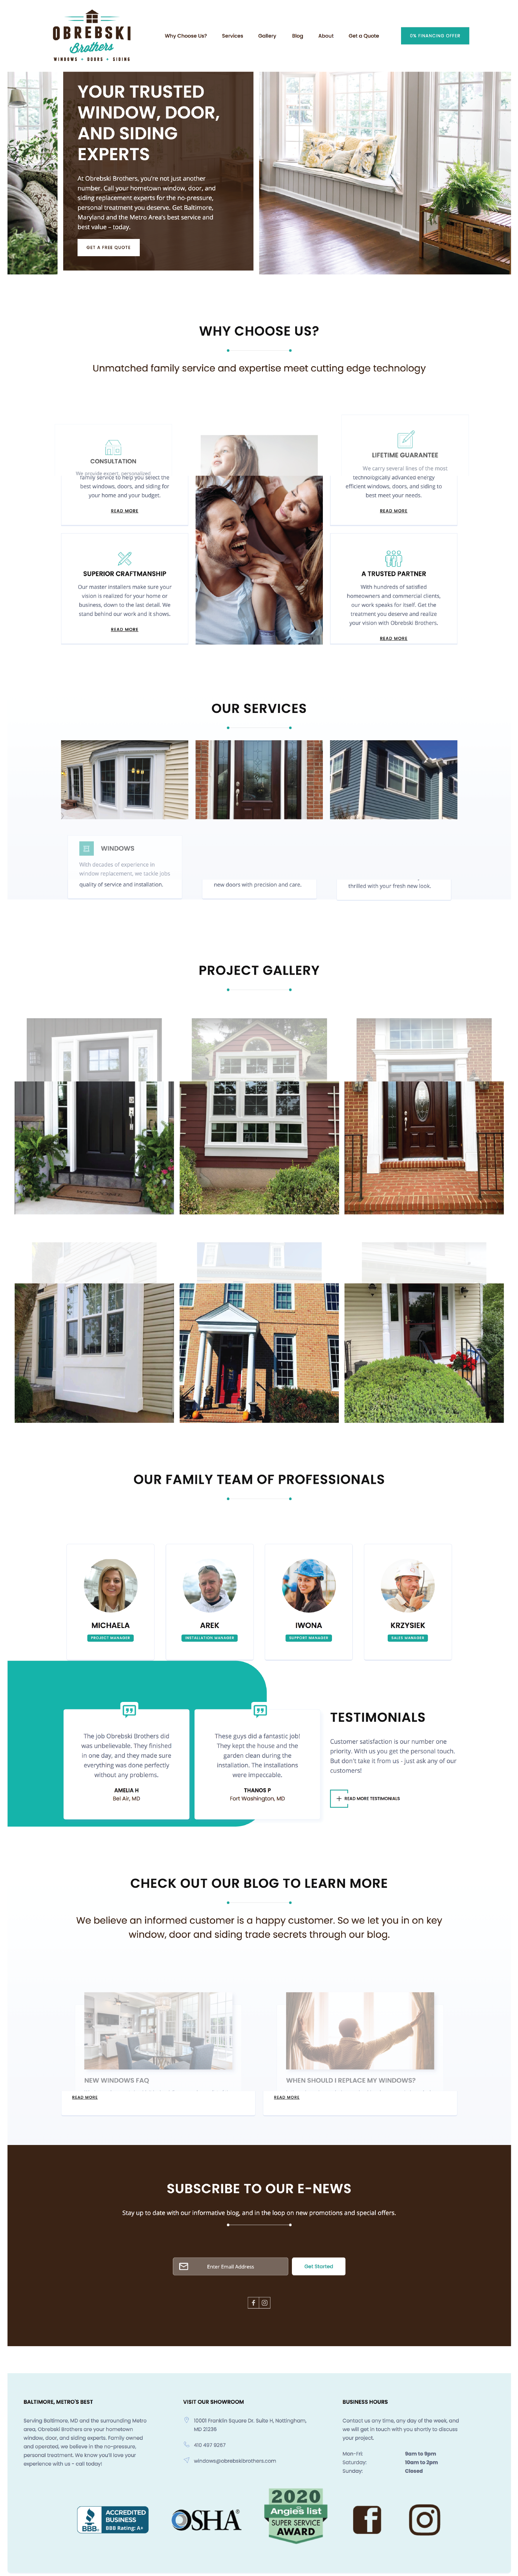 Windows and Doors contractor website design Inspiration from the Obrebski Borthers.